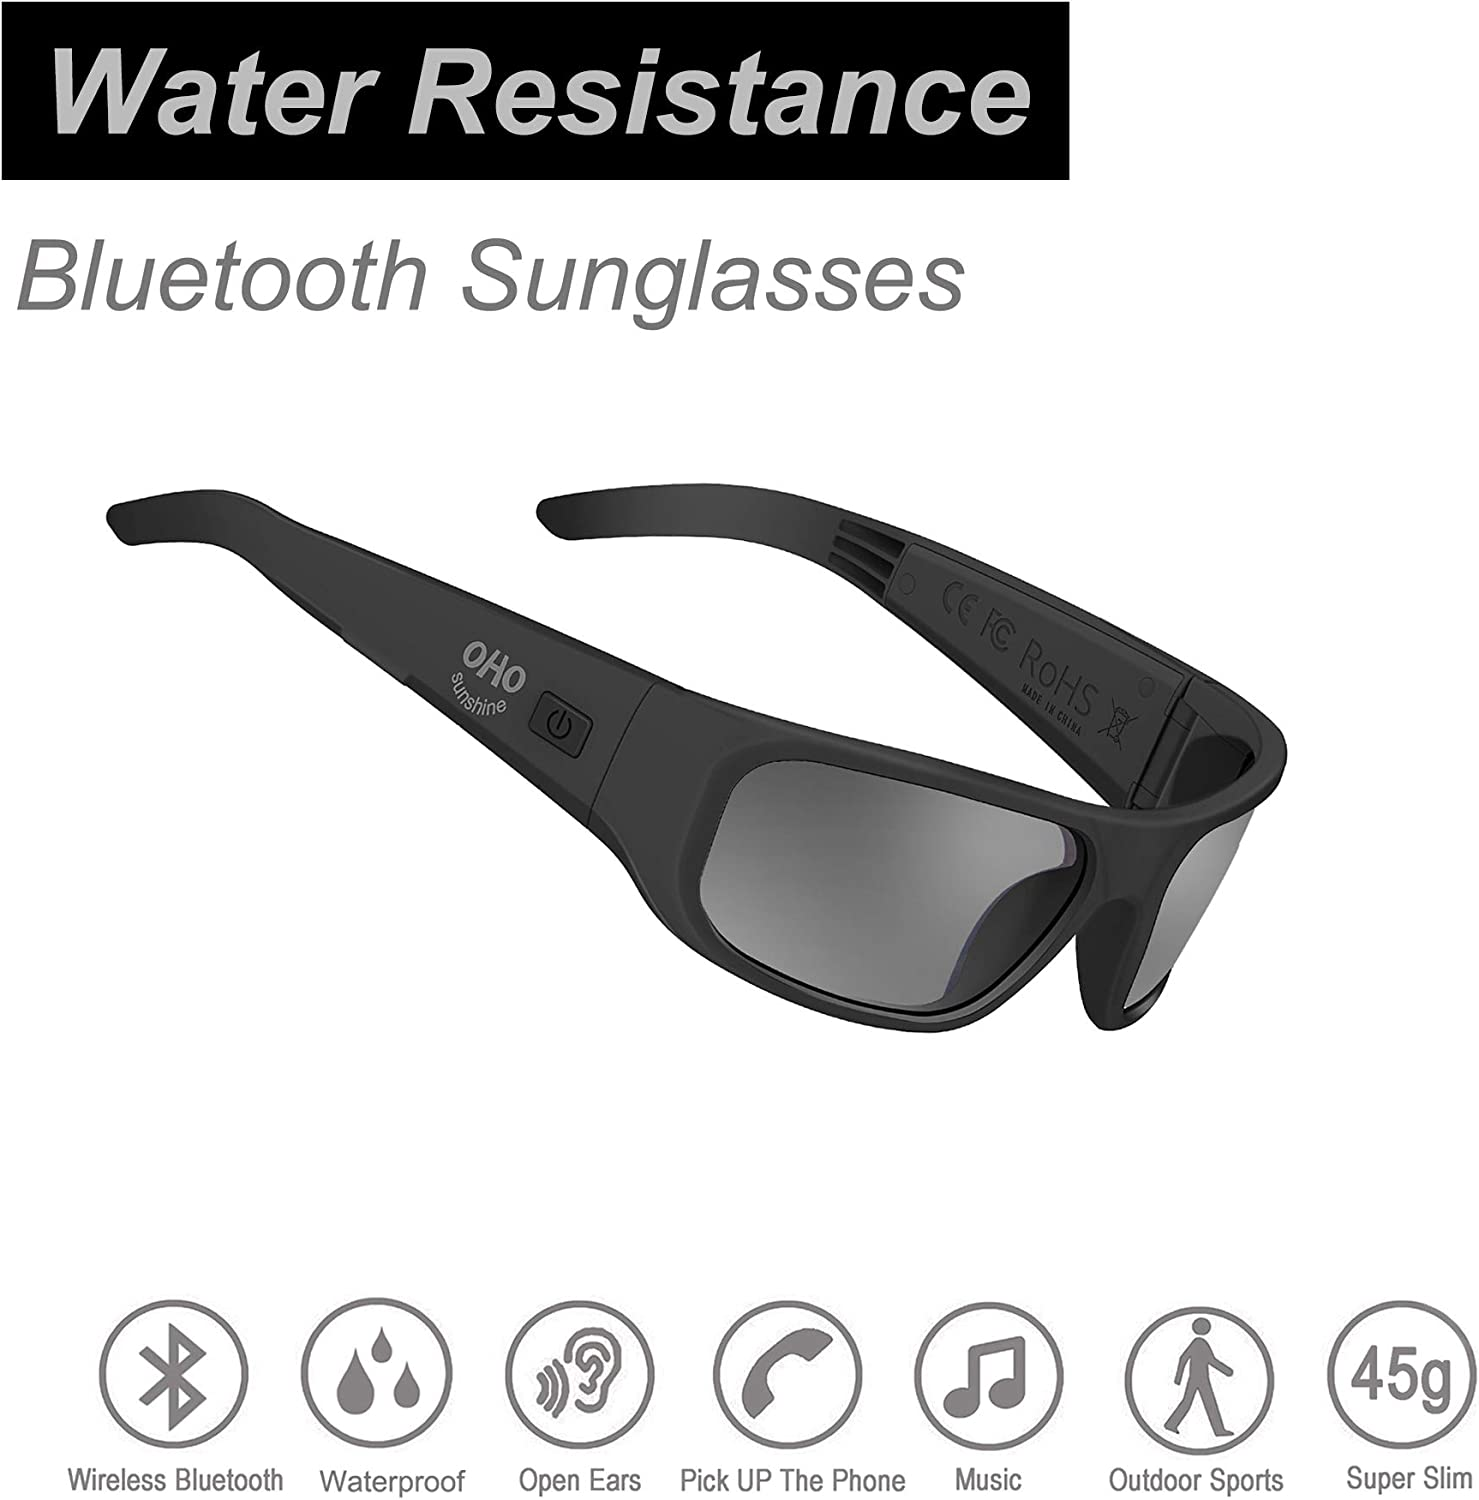 Water Resistance Audio Sunglasses,Open Ear Bluetooth Sunglasses to Listen Music and Make Phone Calls with Polarized UV400 Protection Safety Lenses